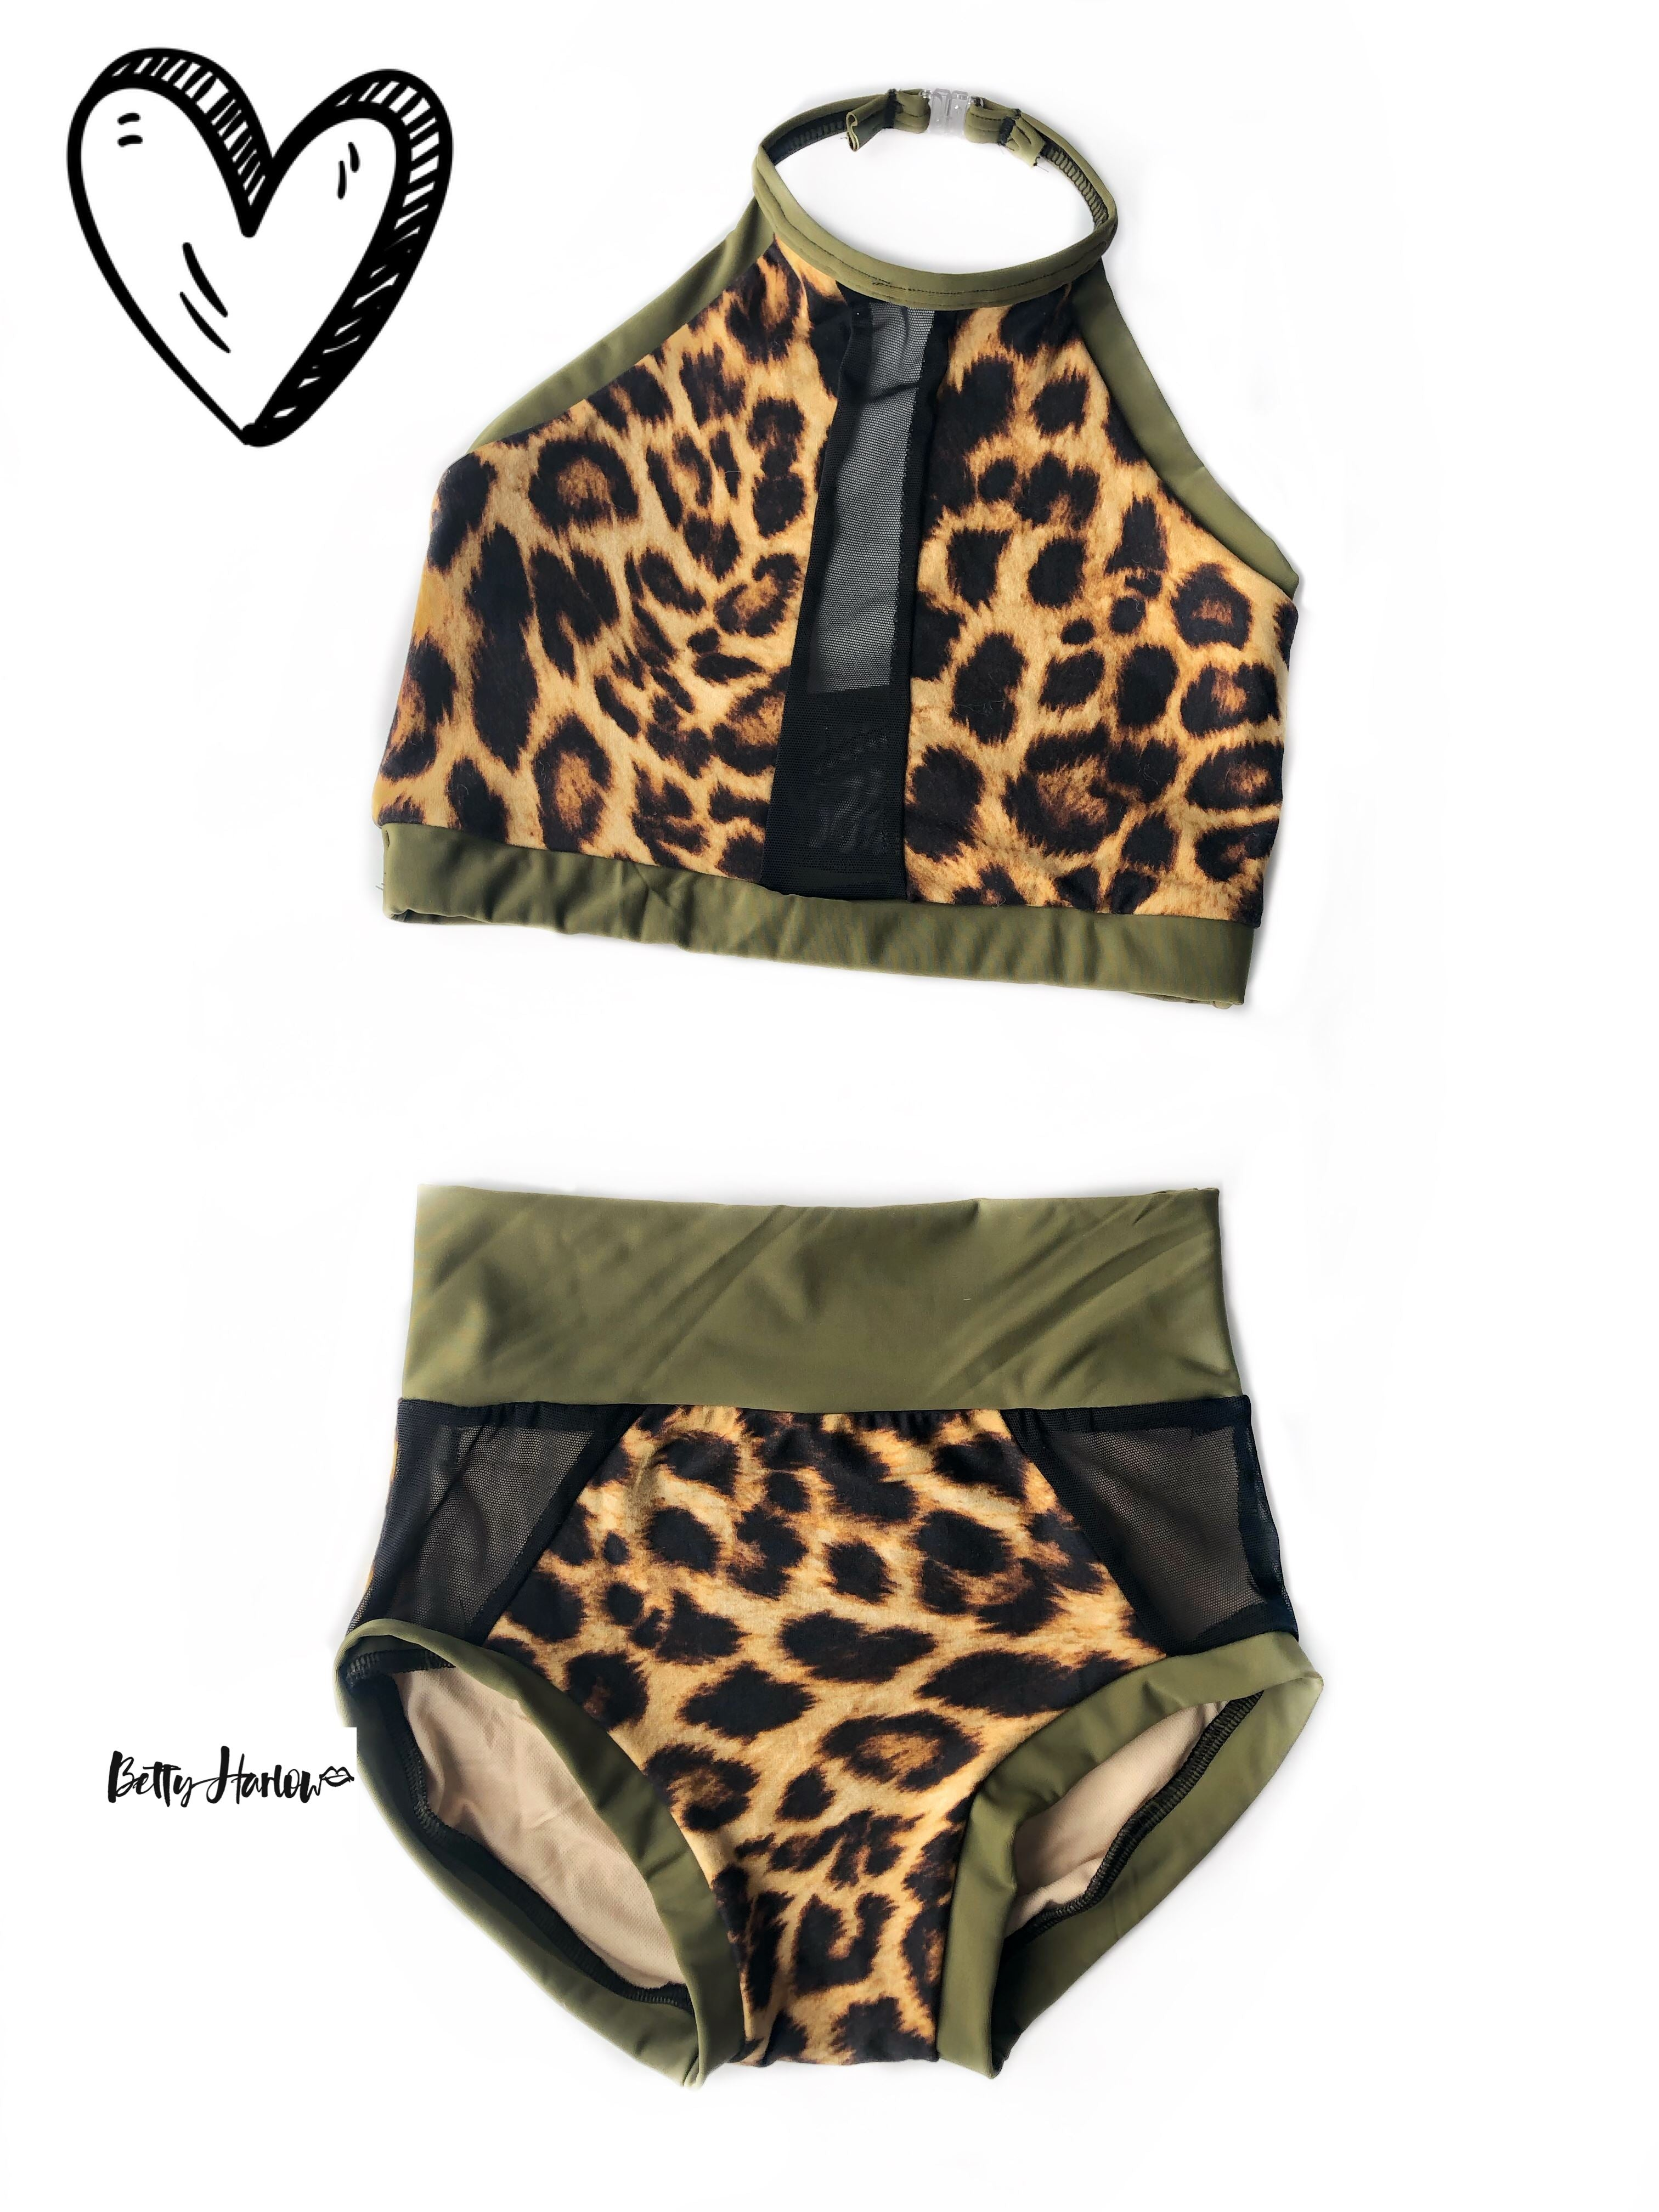 Leopard & olive halter set or leotard Betty Harlow